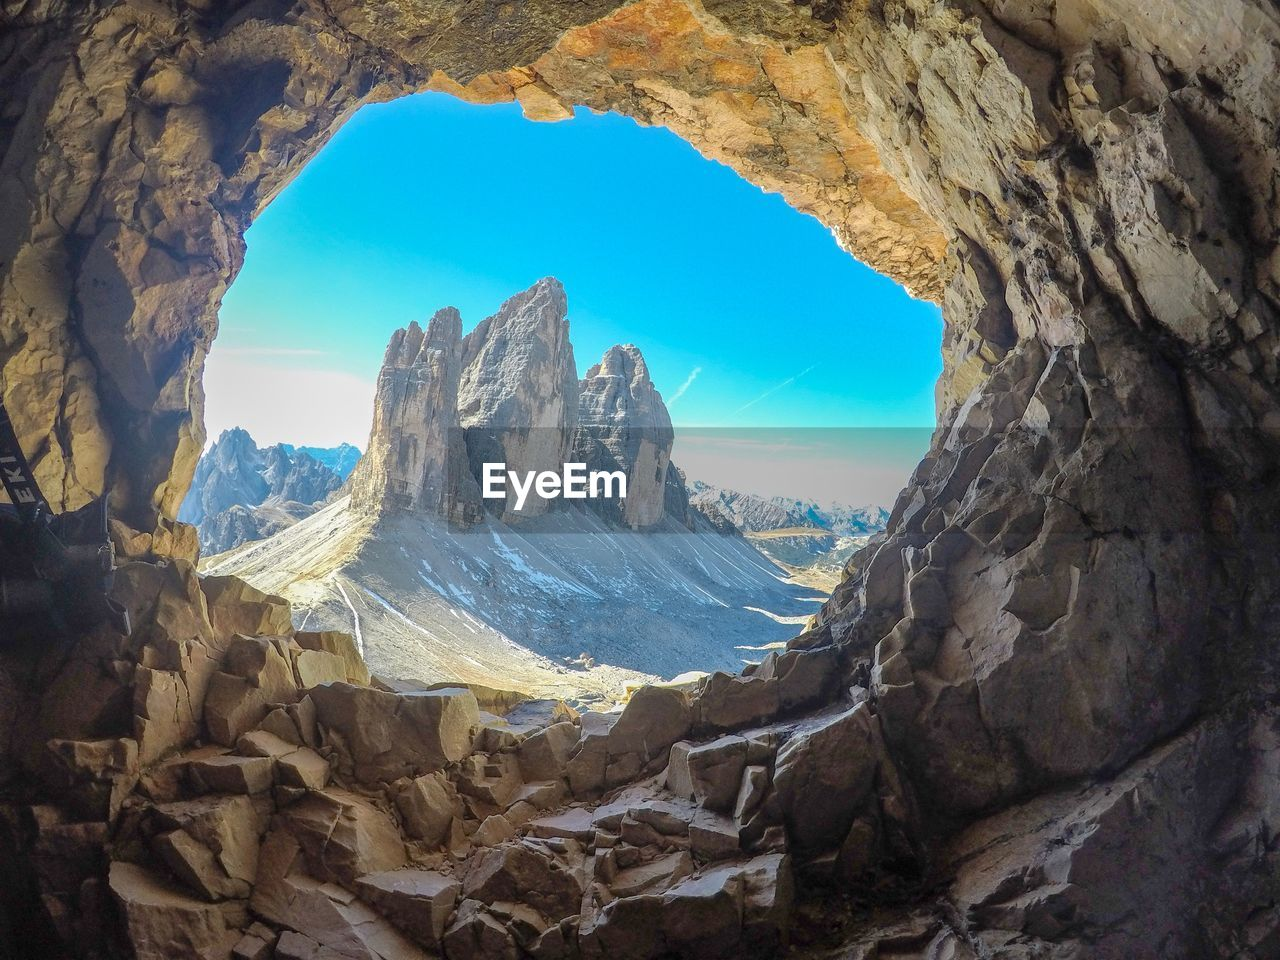 rock, rock - object, solid, rock formation, beauty in nature, scenics - nature, sky, mountain, nature, tranquility, tranquil scene, no people, non-urban scene, day, physical geography, arch, mountain range, rough, geology, idyllic, natural arch, outdoors, formation, eroded